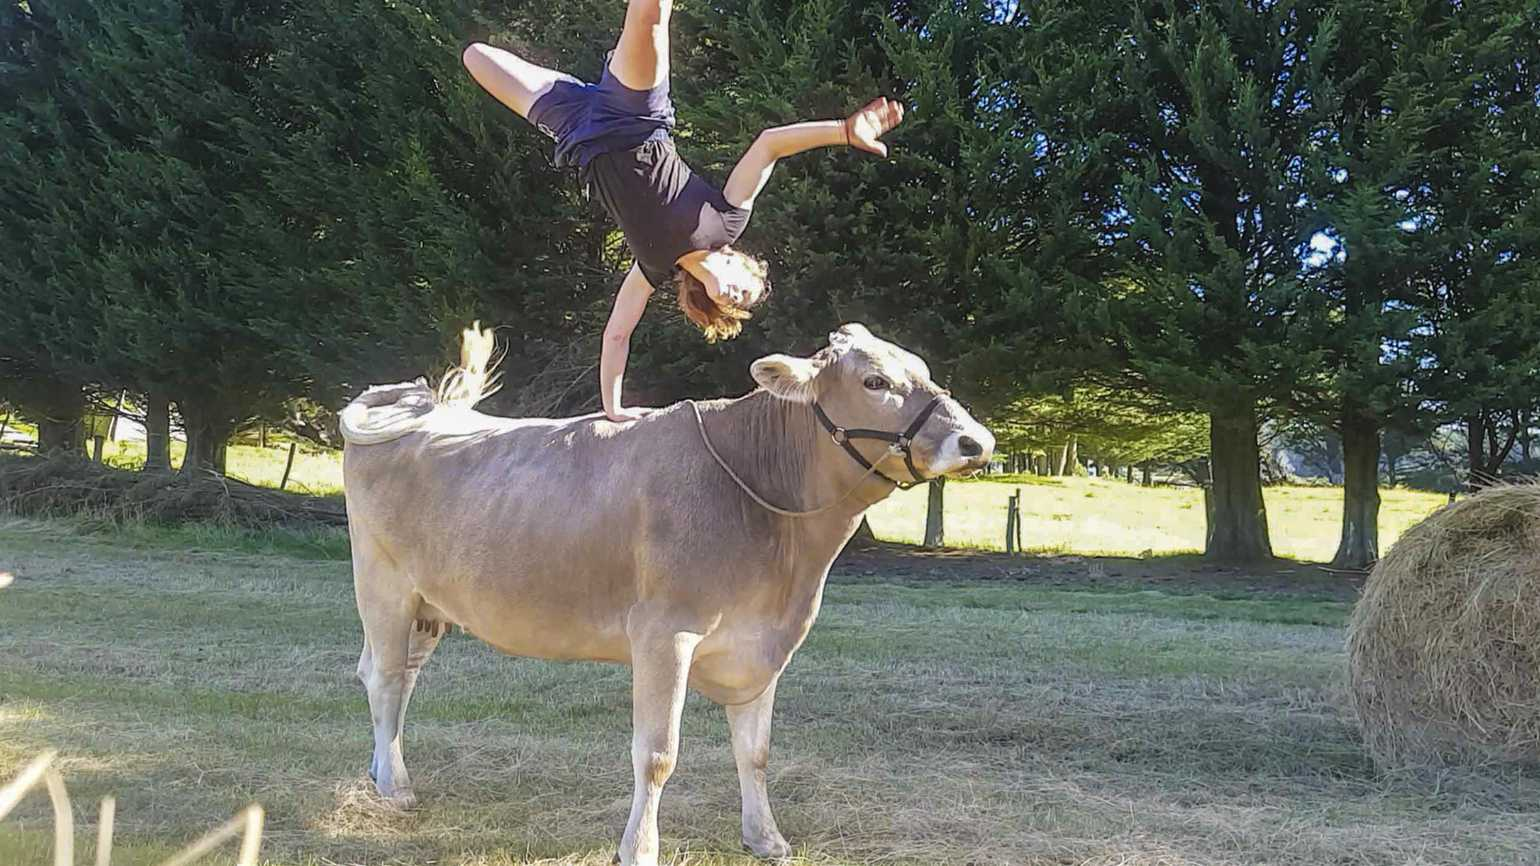 Lilac is Hannah's dream ride and platform for cartwheels and handstands.